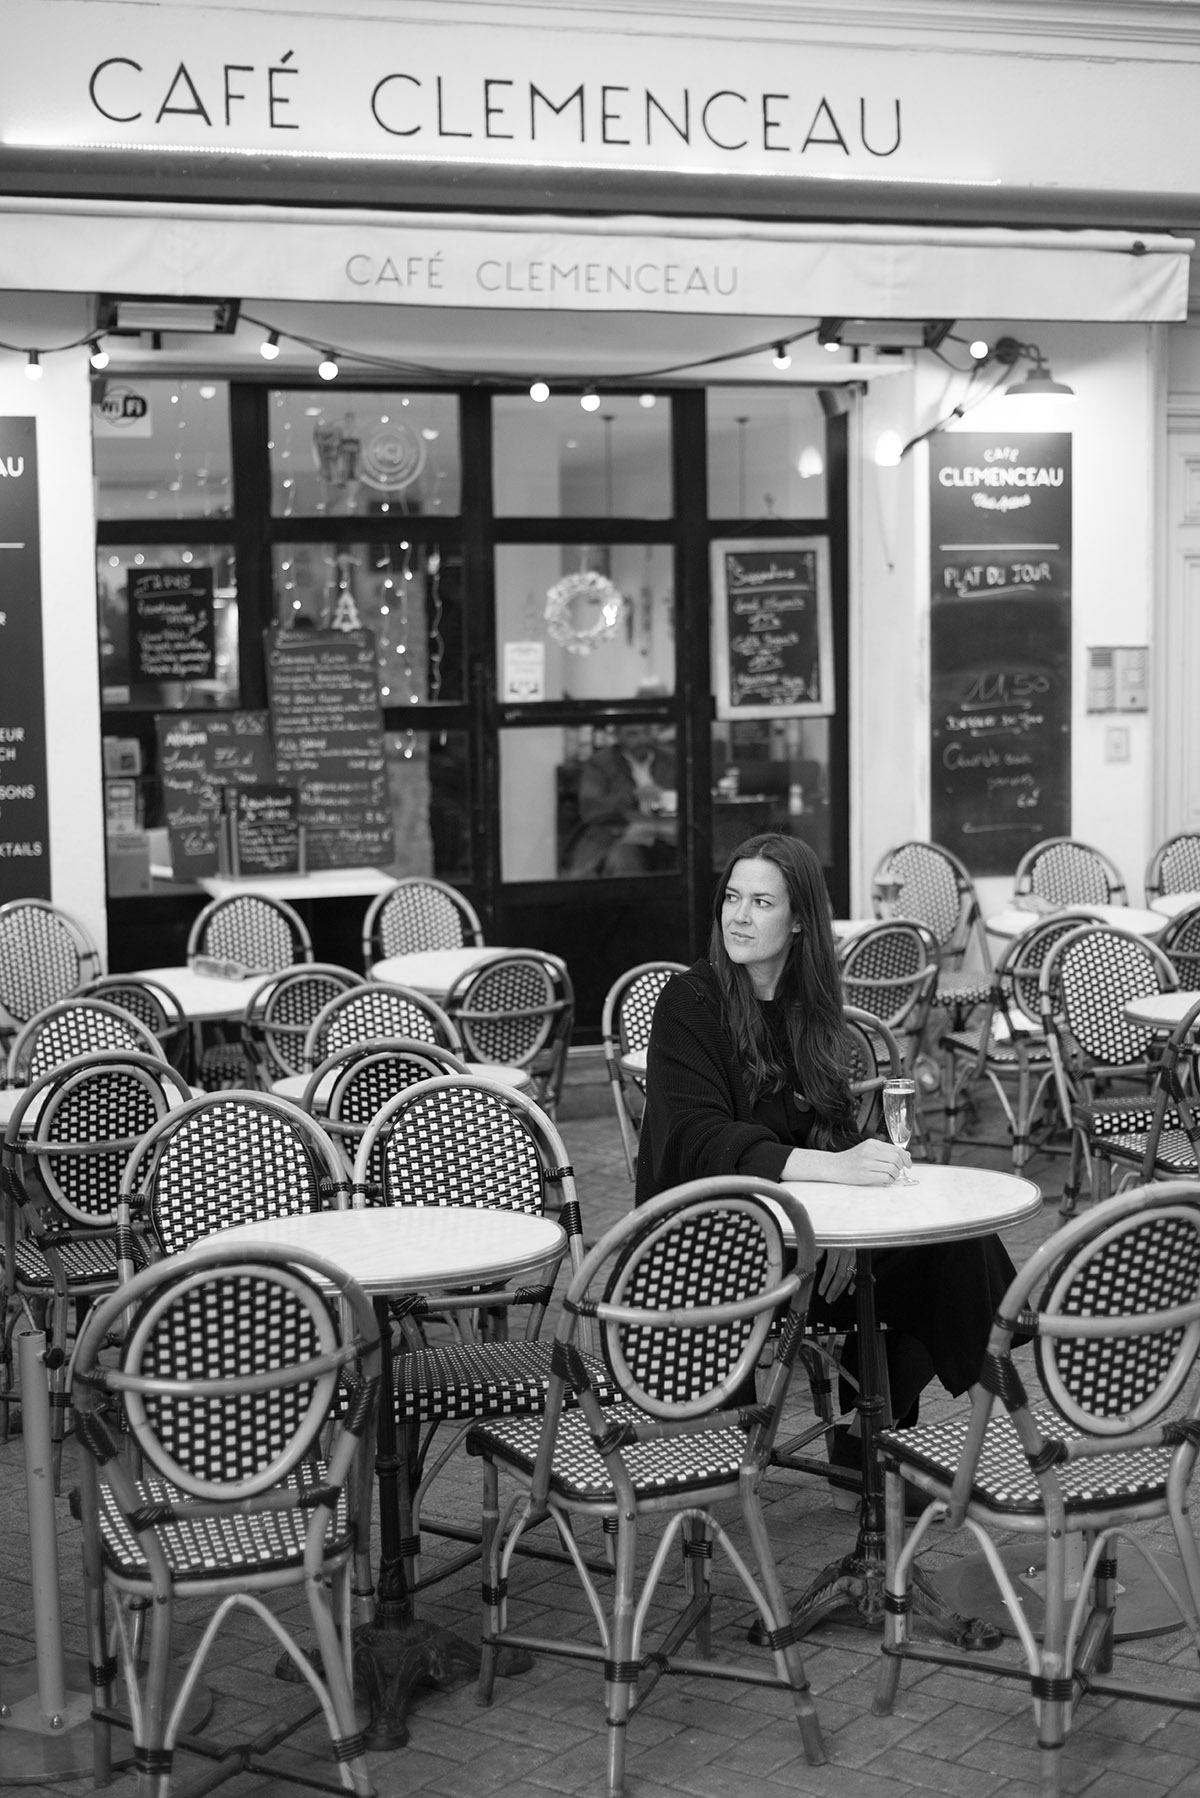 Cocktails outside, looking out onto the main plaza, at Cafe Clemenceau in Antibes.